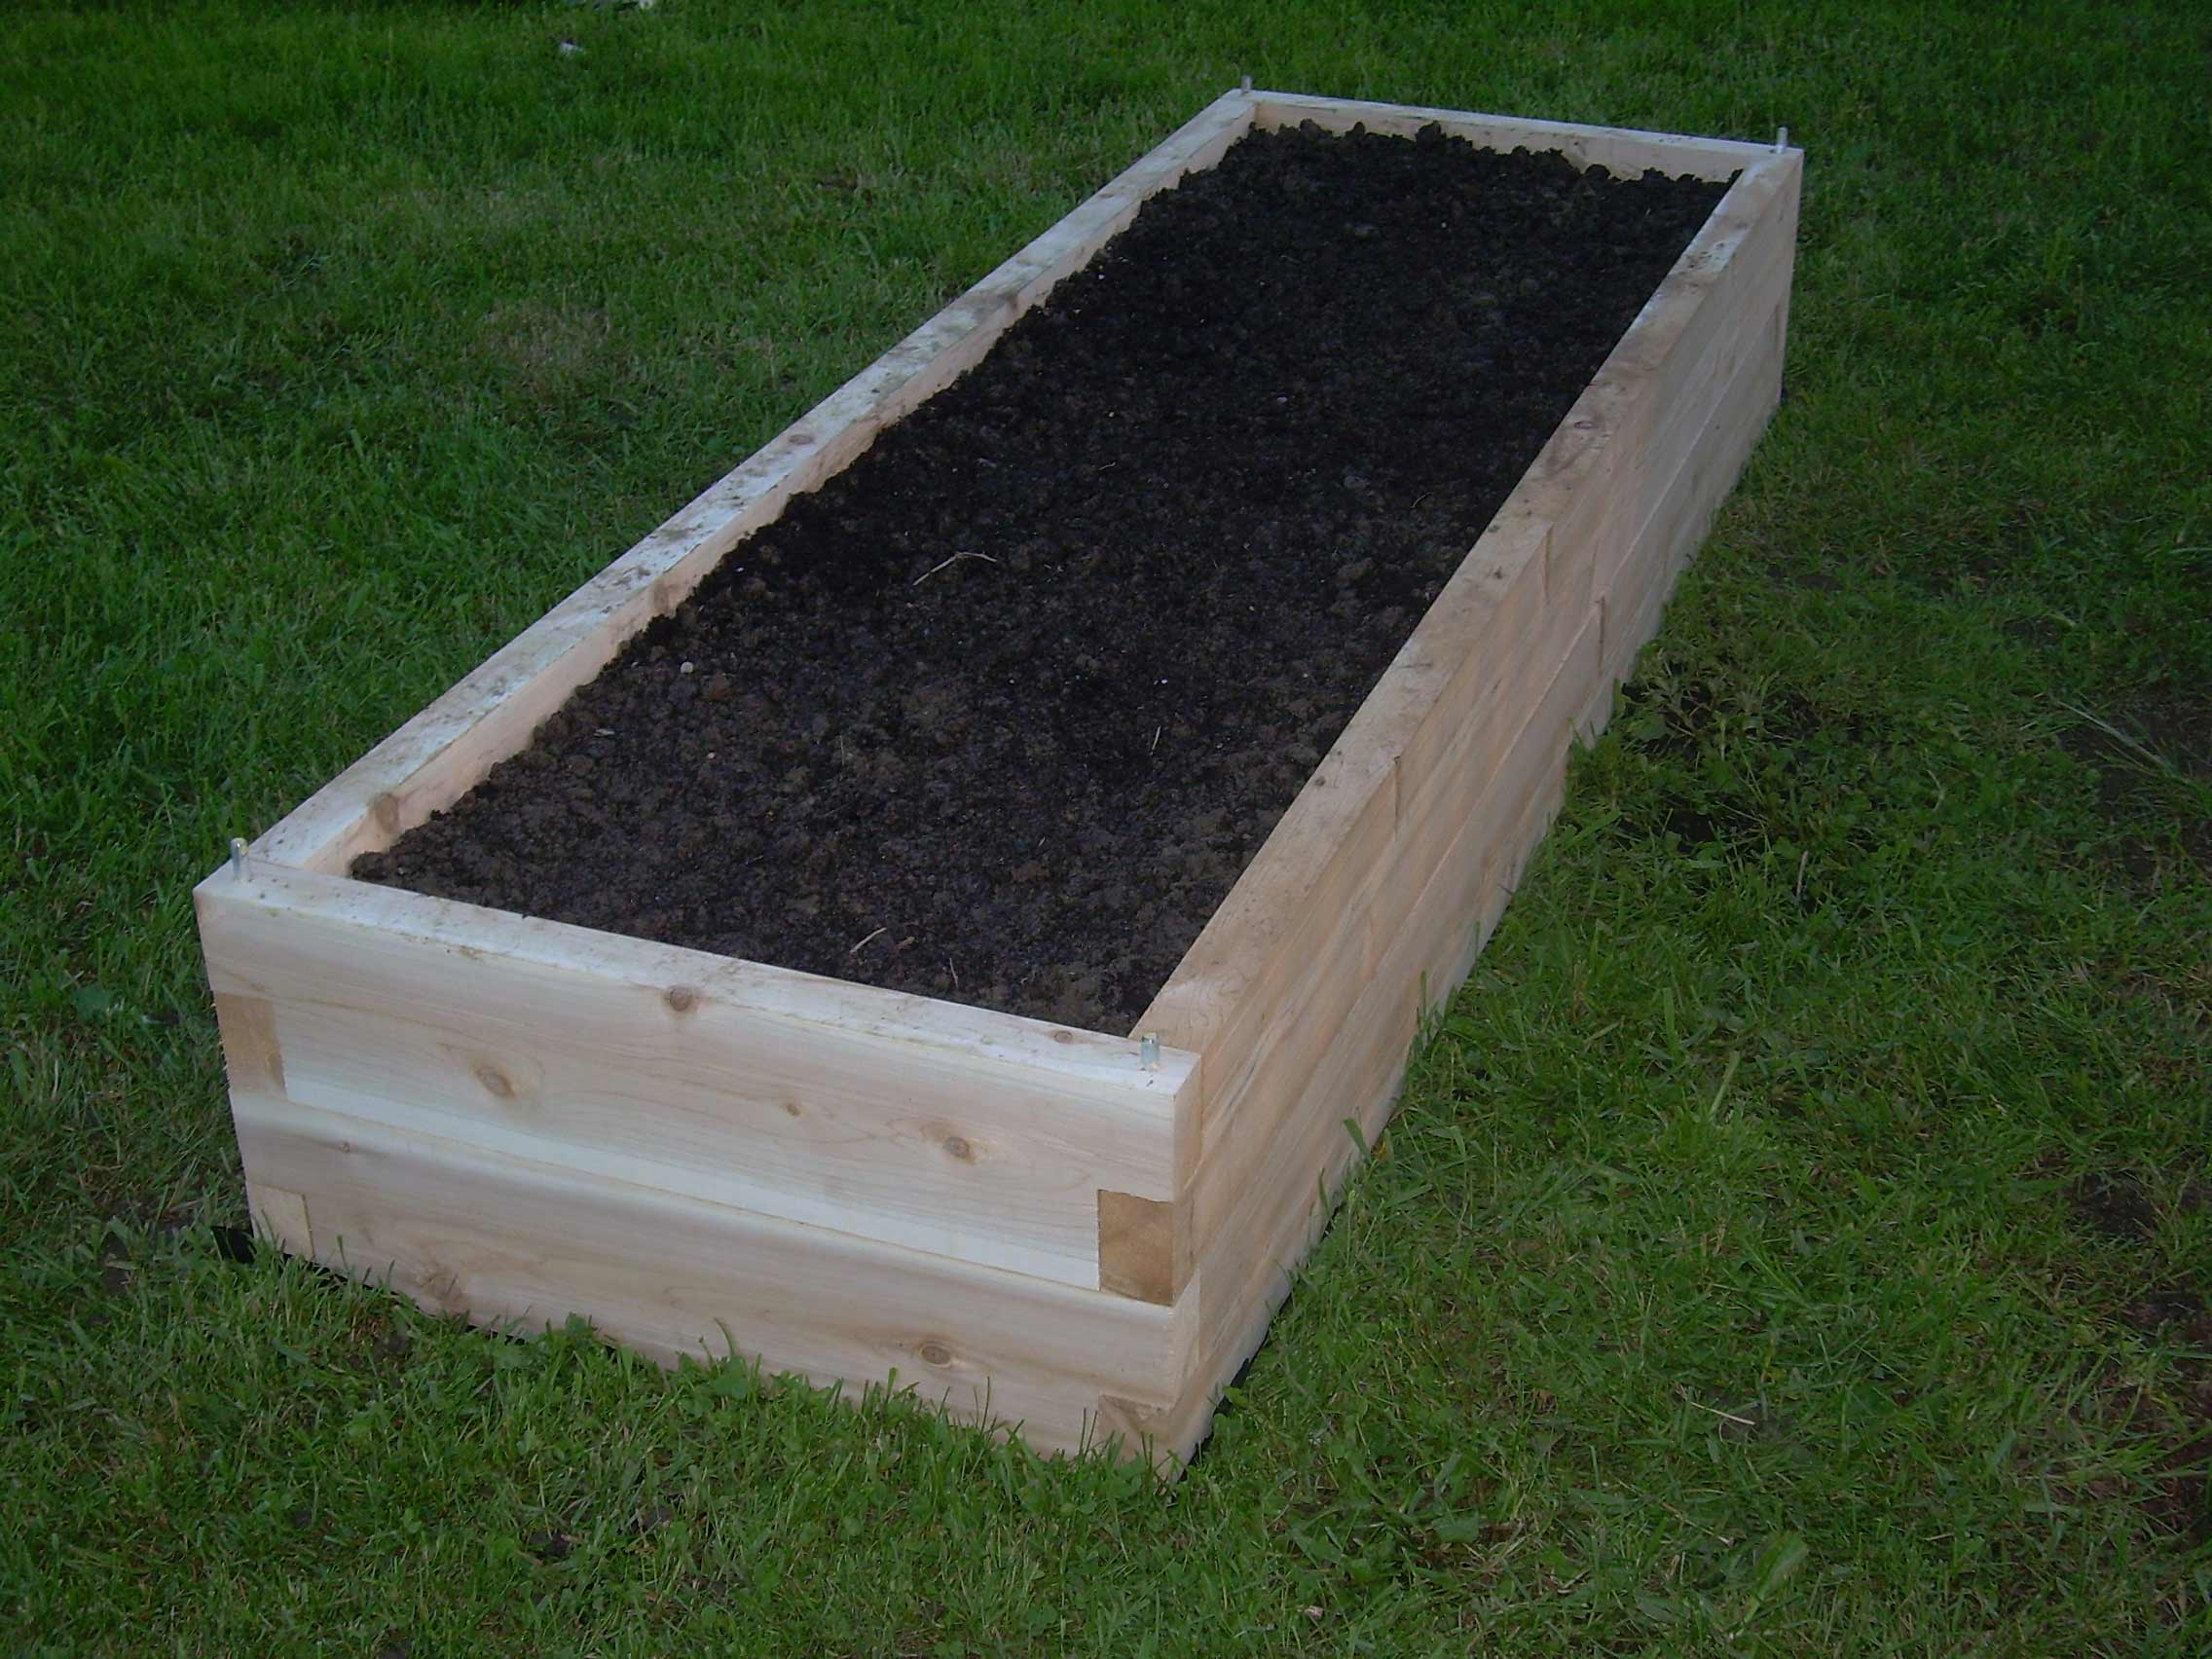 Raised Bed Garden Kits Home Depot Terrasse En Bois